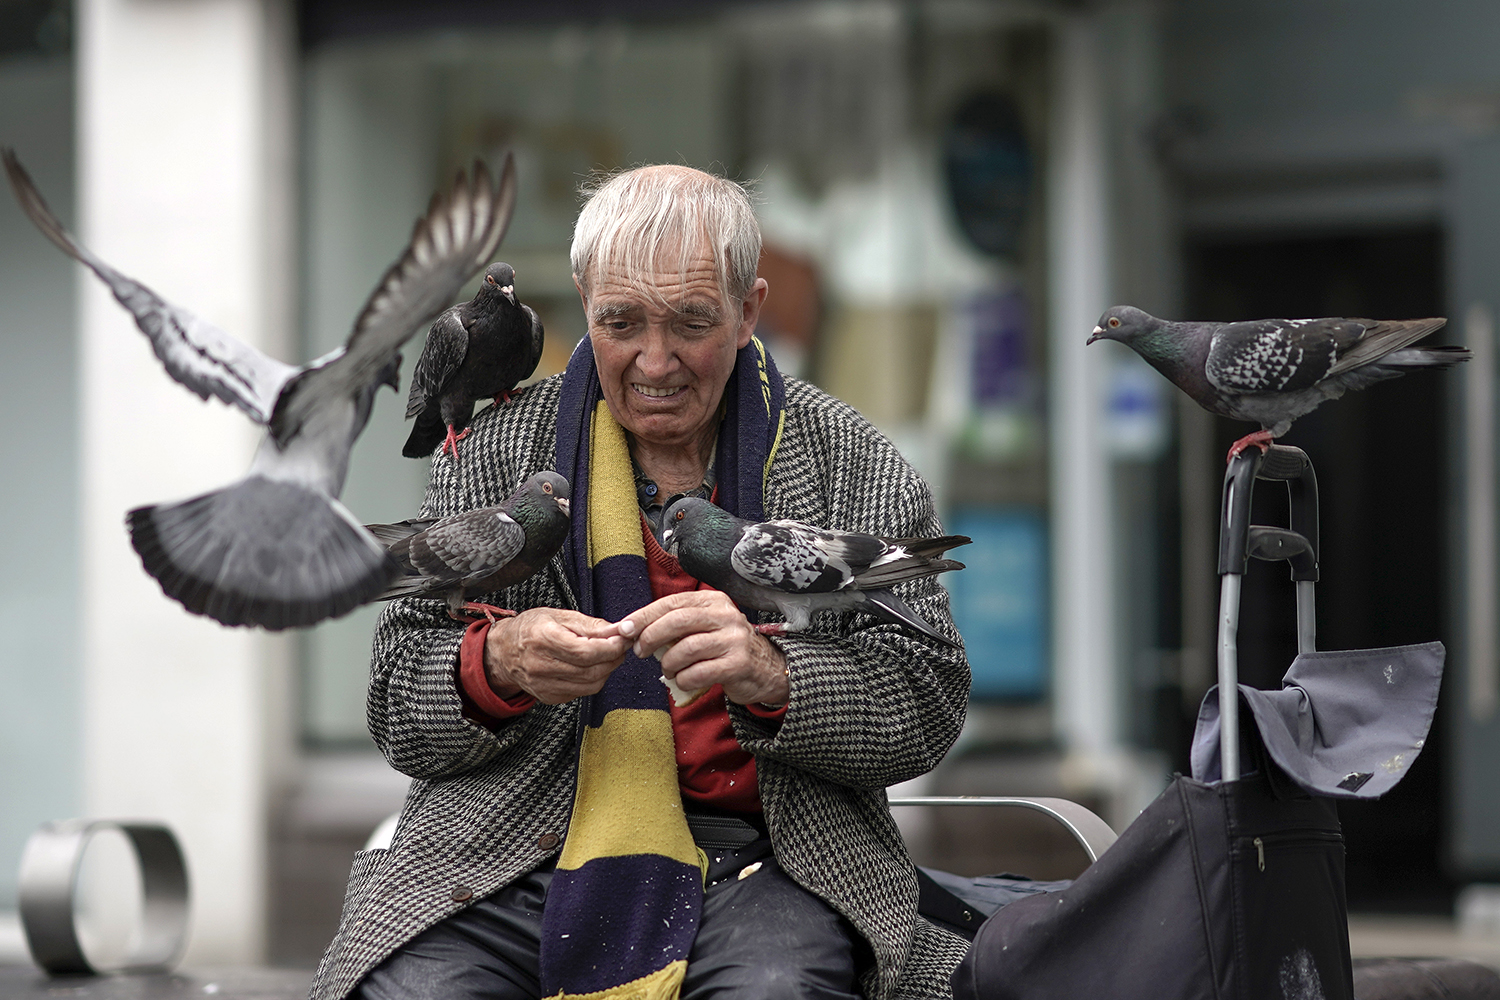 A man feeds pigeons in St John's shopping center in Liverpool, England, on July 15. Christopher Furlong/Getty Images